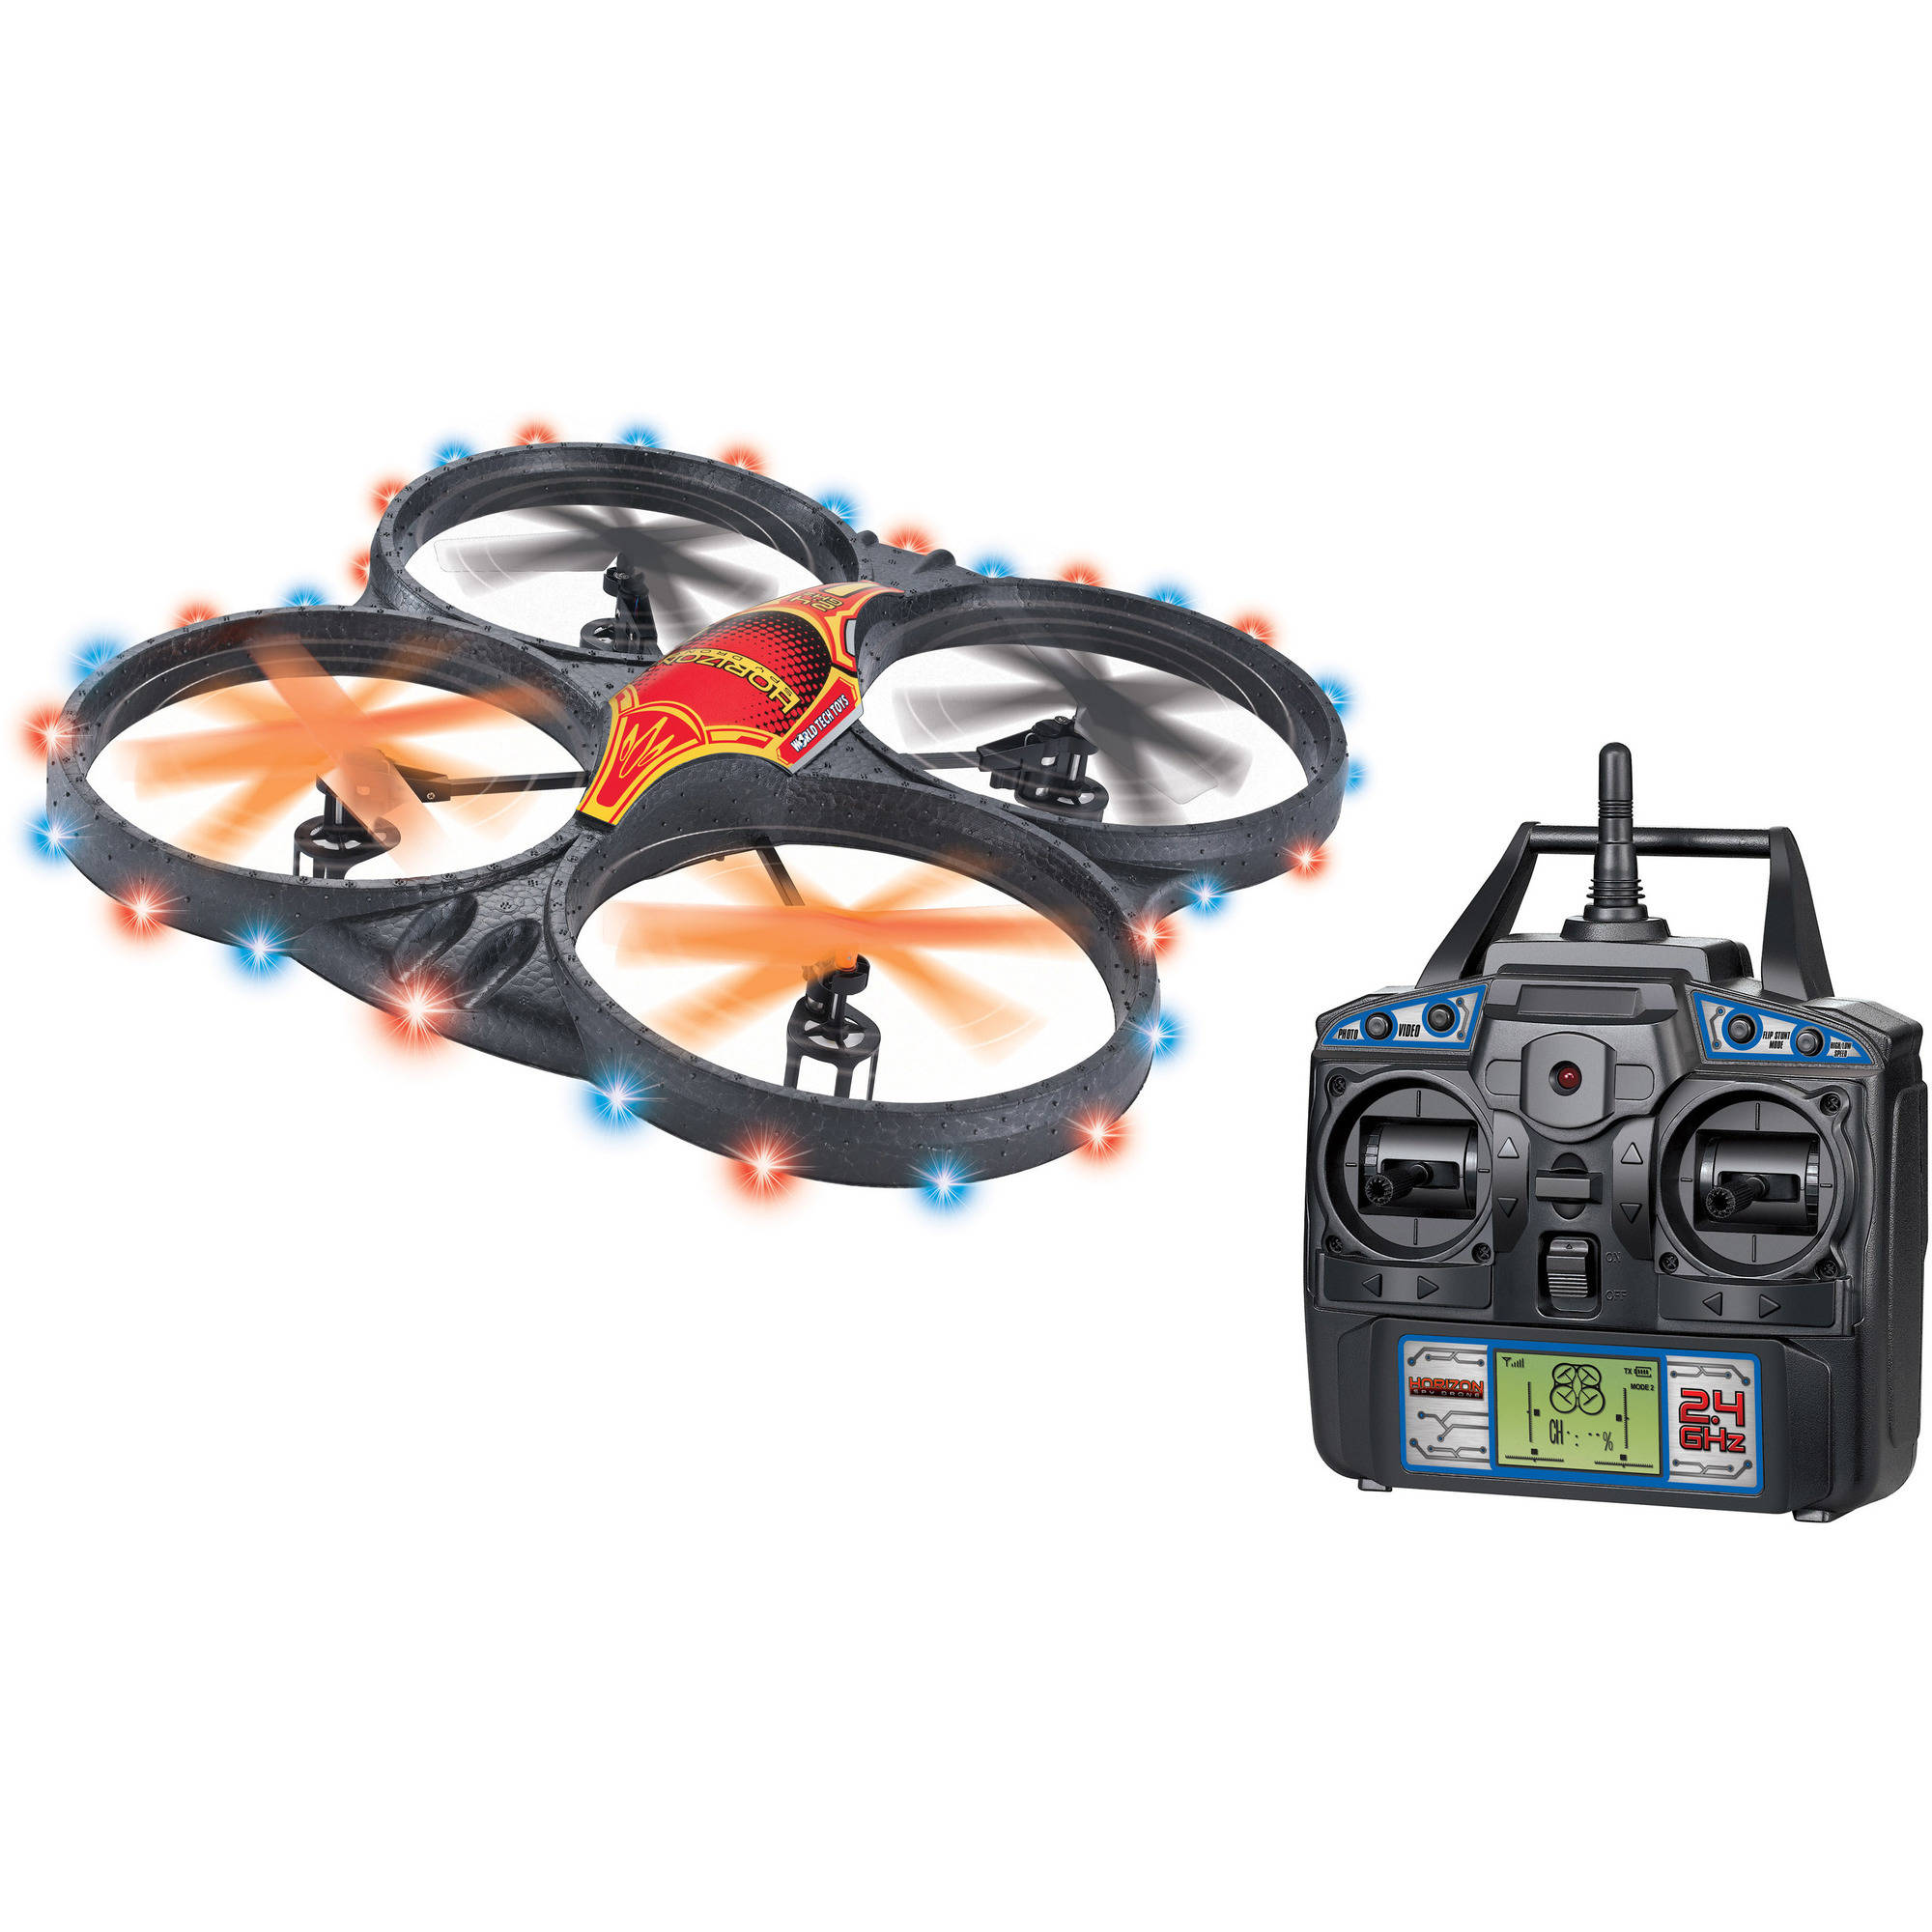 2.4Ghz 4.5-Channel Horizon Spy Drone Picture and Video Remote Control Quadcopter by World Tech Toys